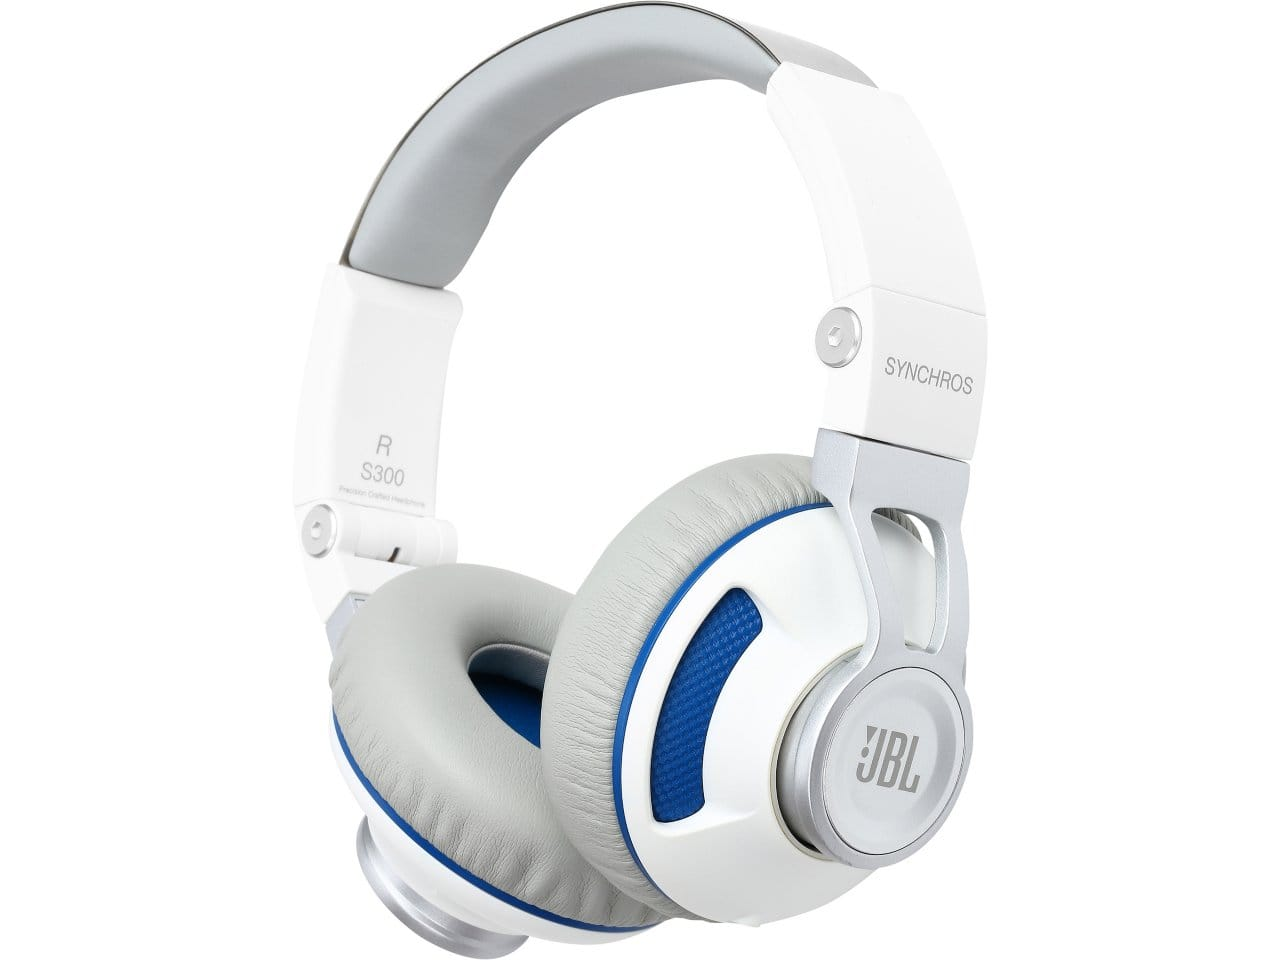 JBL Synchros S300 White & Blue Premium On-Ear Headphones with Built-in Android Remote & Microphone for $34.99 AR + Free Shipping @ Newegg.com